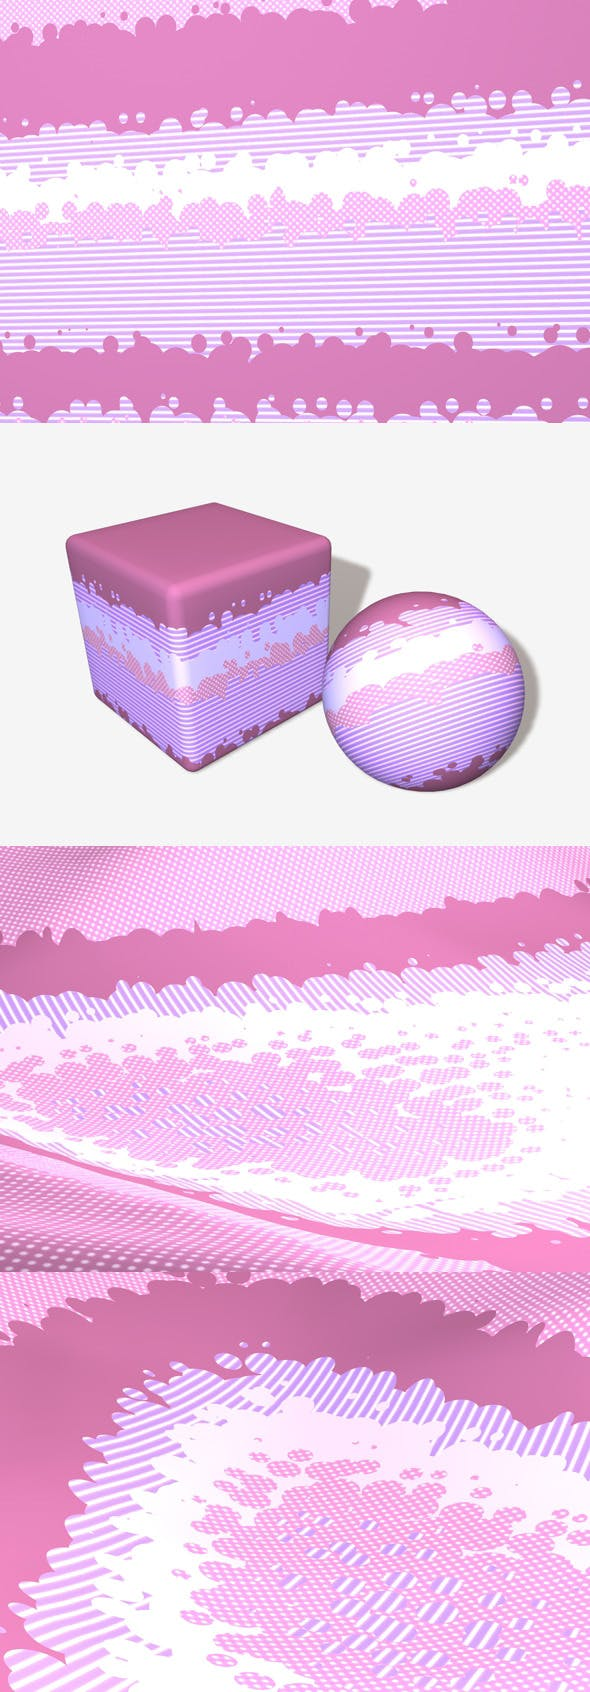 Animated Pink Pop Art Material - 3DOcean Item for Sale